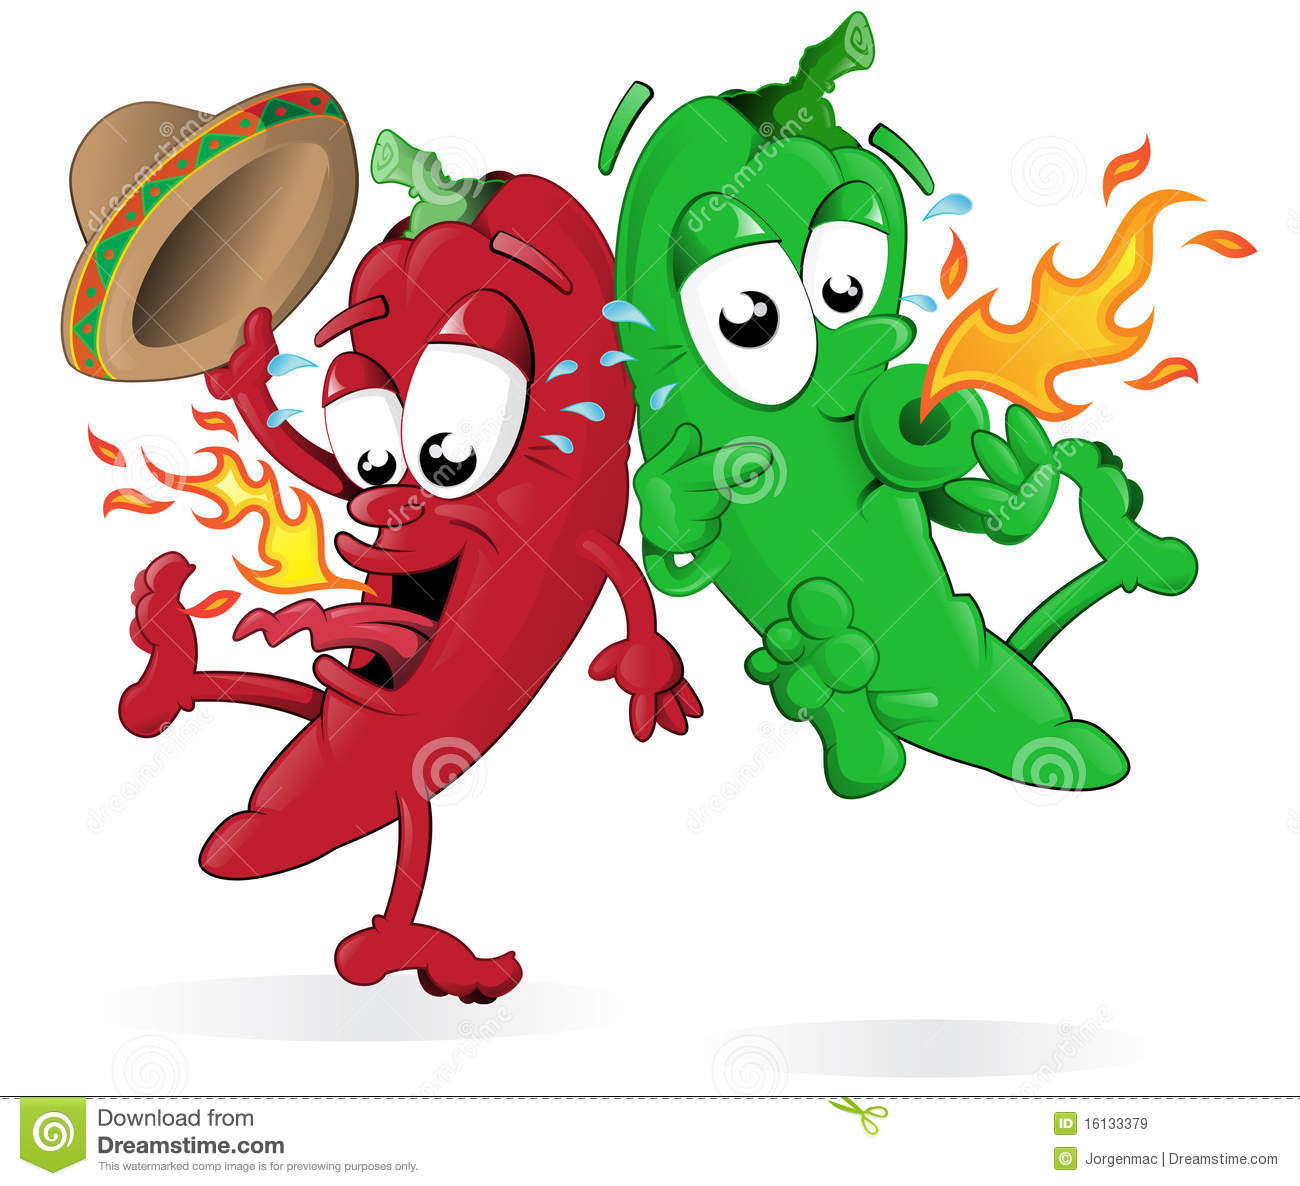 Chili clip art clipart. Red Hot Jumping Chili Peppers .